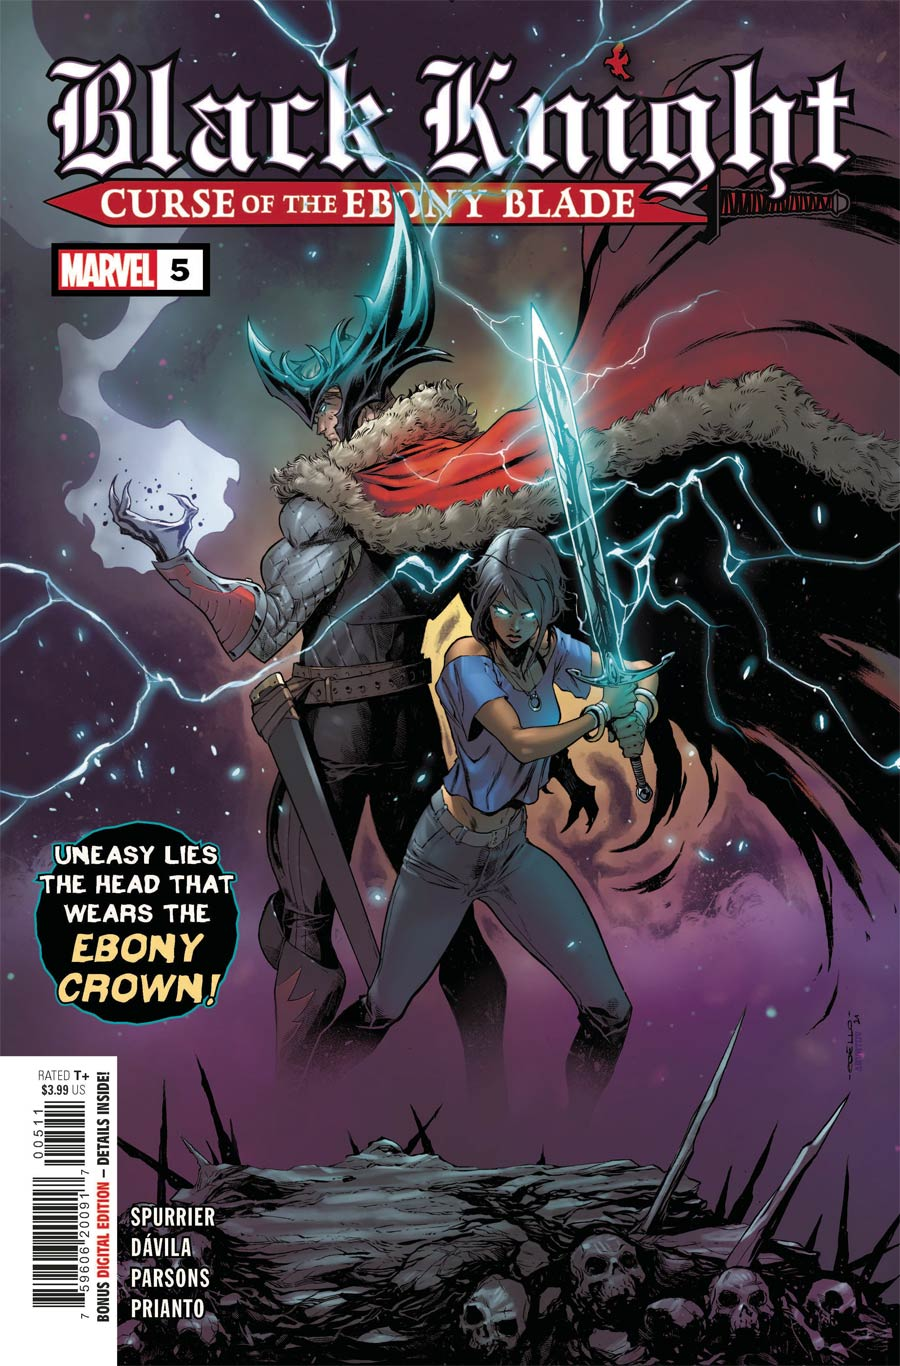 Black Knight Curse Of The Ebony Blade #5 Cover A Regular Iban Coello Cover